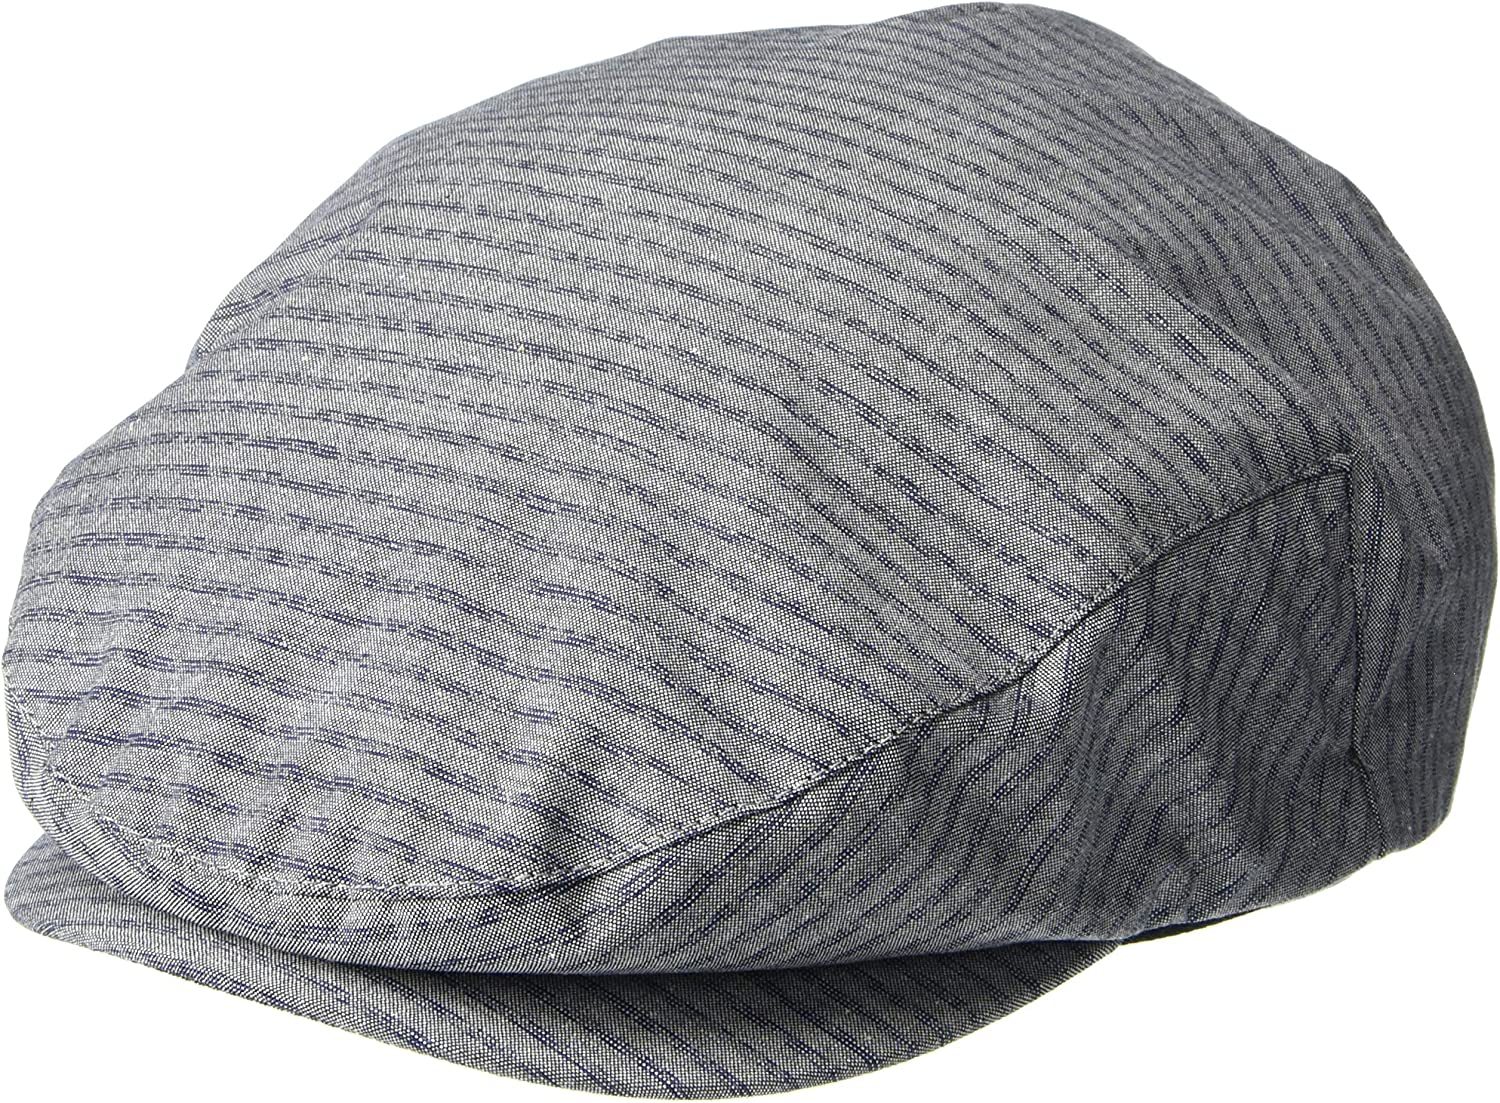 Brixton Men's Shipping Quantity limited included Hooligan Driver Snap Hat